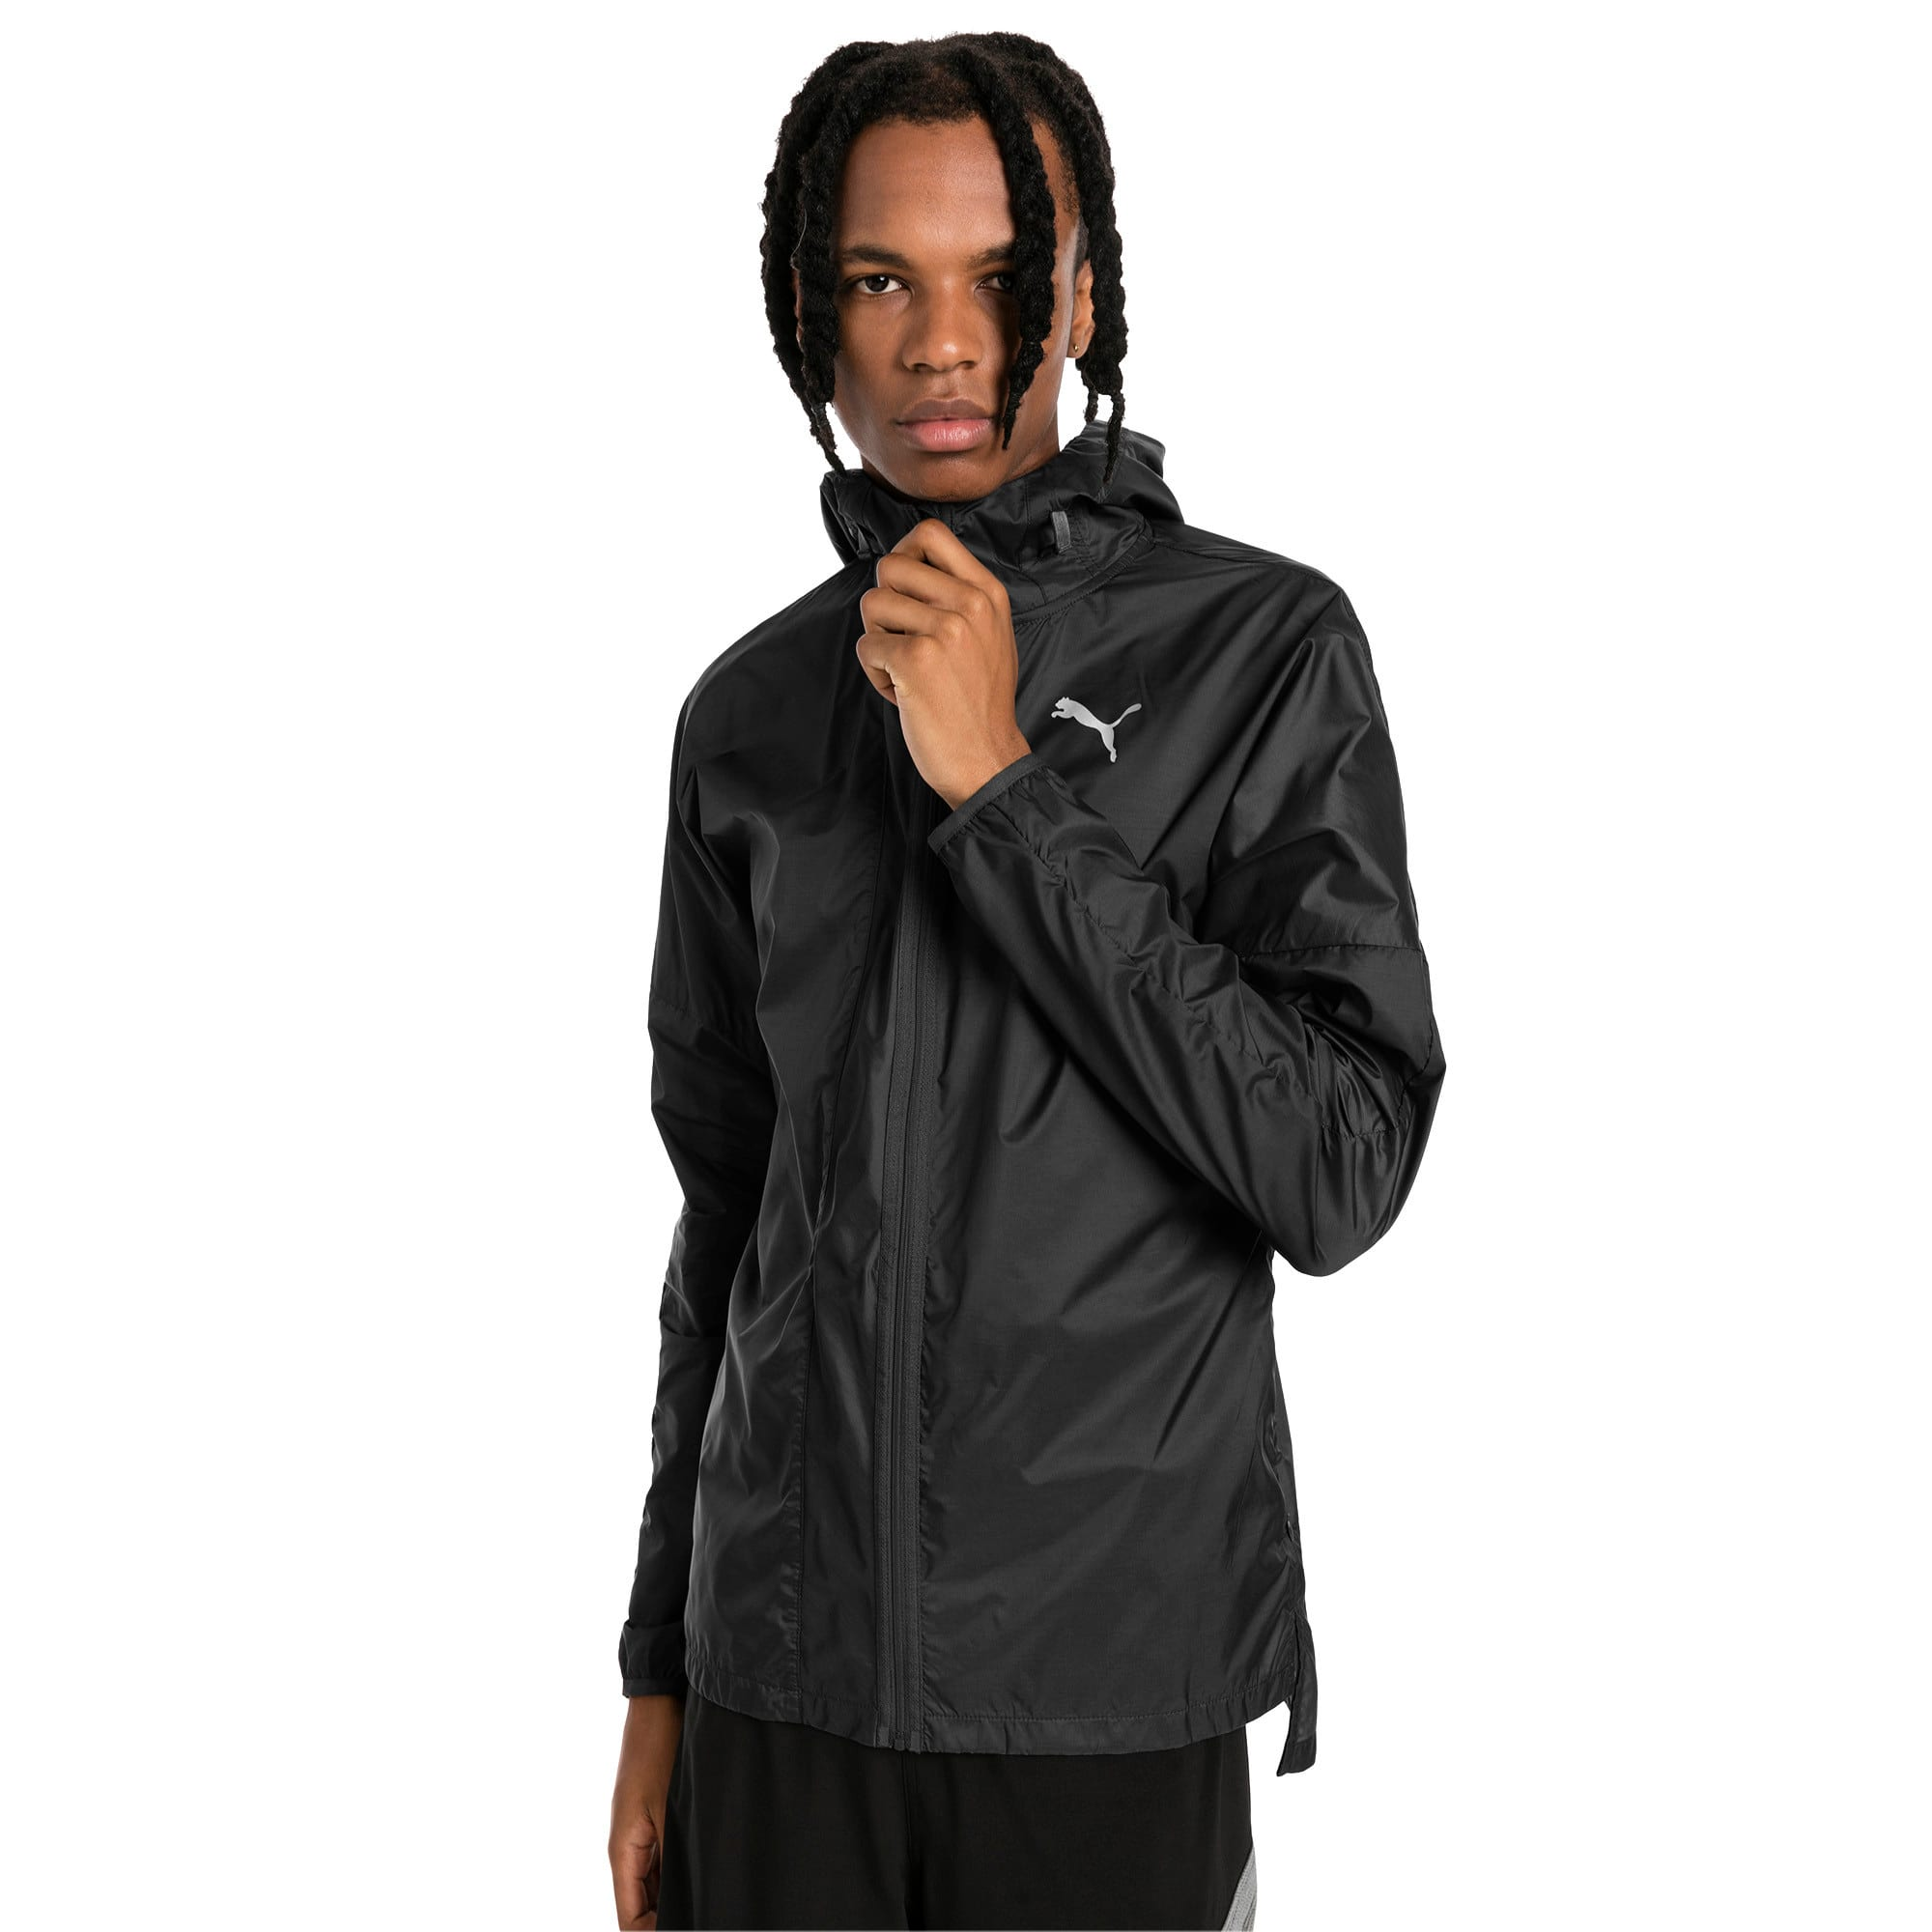 Thumbnail 1 of LastLap Herren Training Jacke, Asphalt Heather, medium